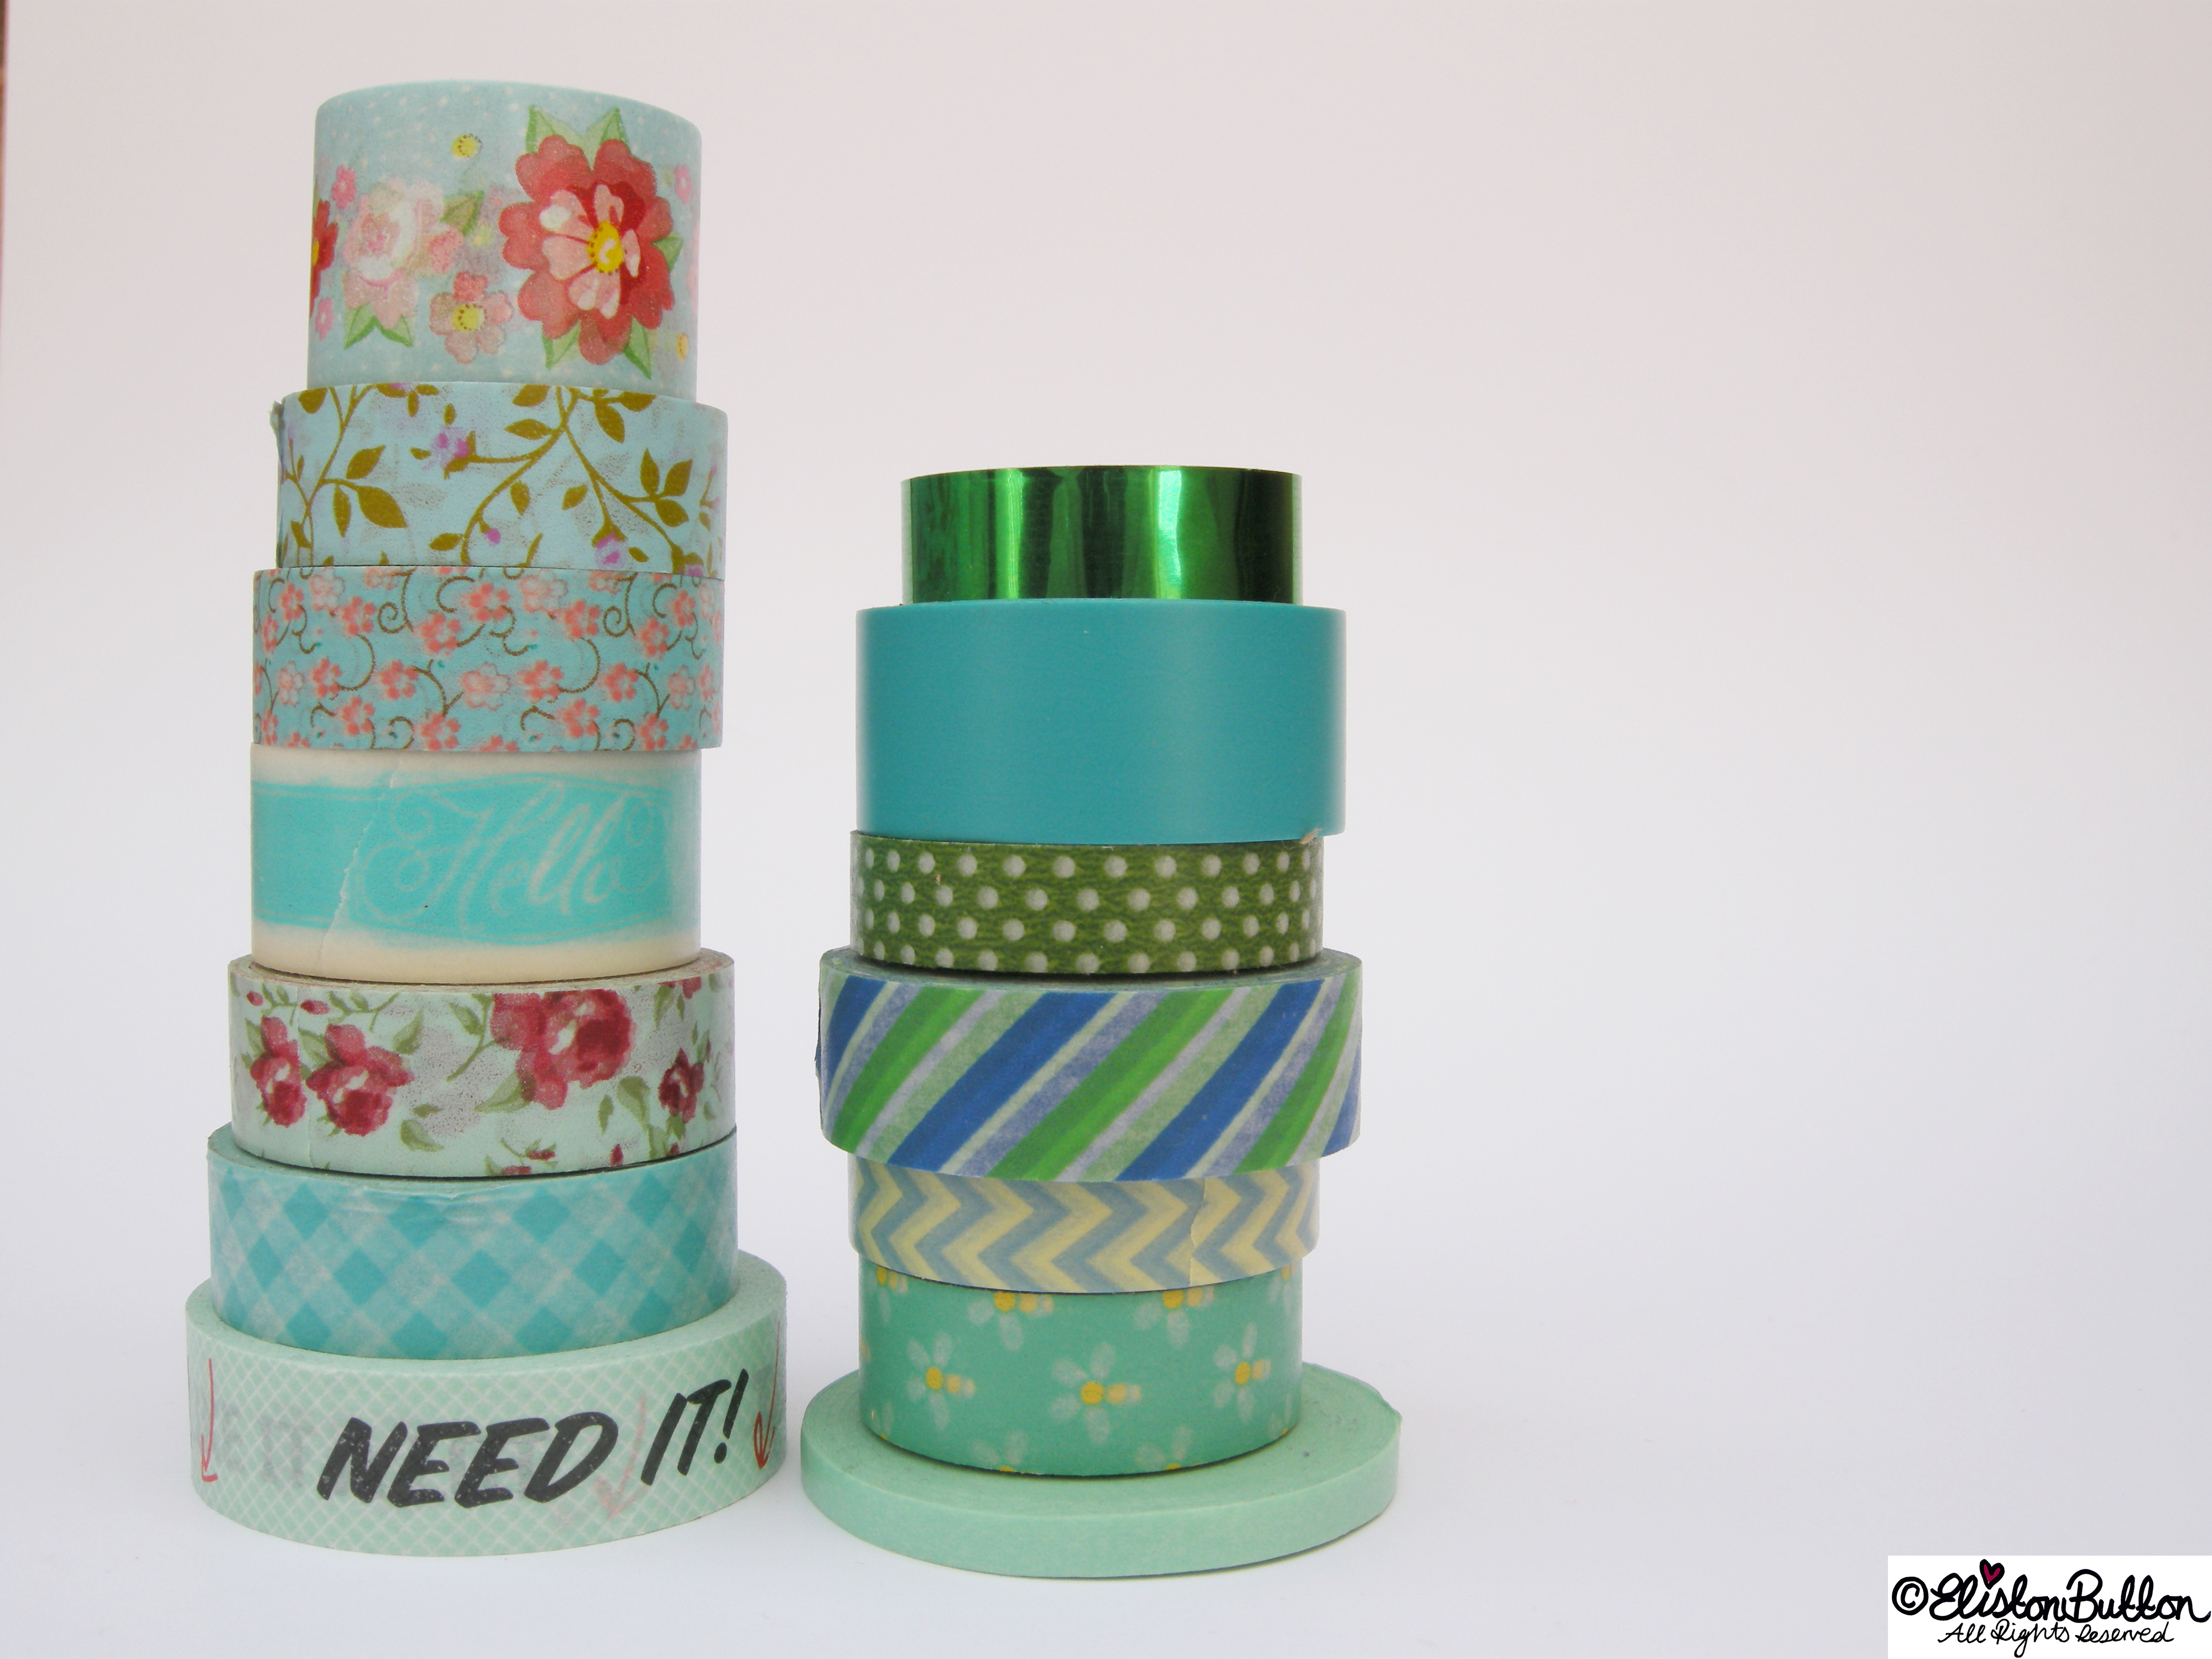 Gorgeous Green Piles of Washi Tape Rolls - My Washi Tape Collection at www.elistonbutton.com - Eliston Button - That Crafty Kid – Art, Design, Craft & Adventure.